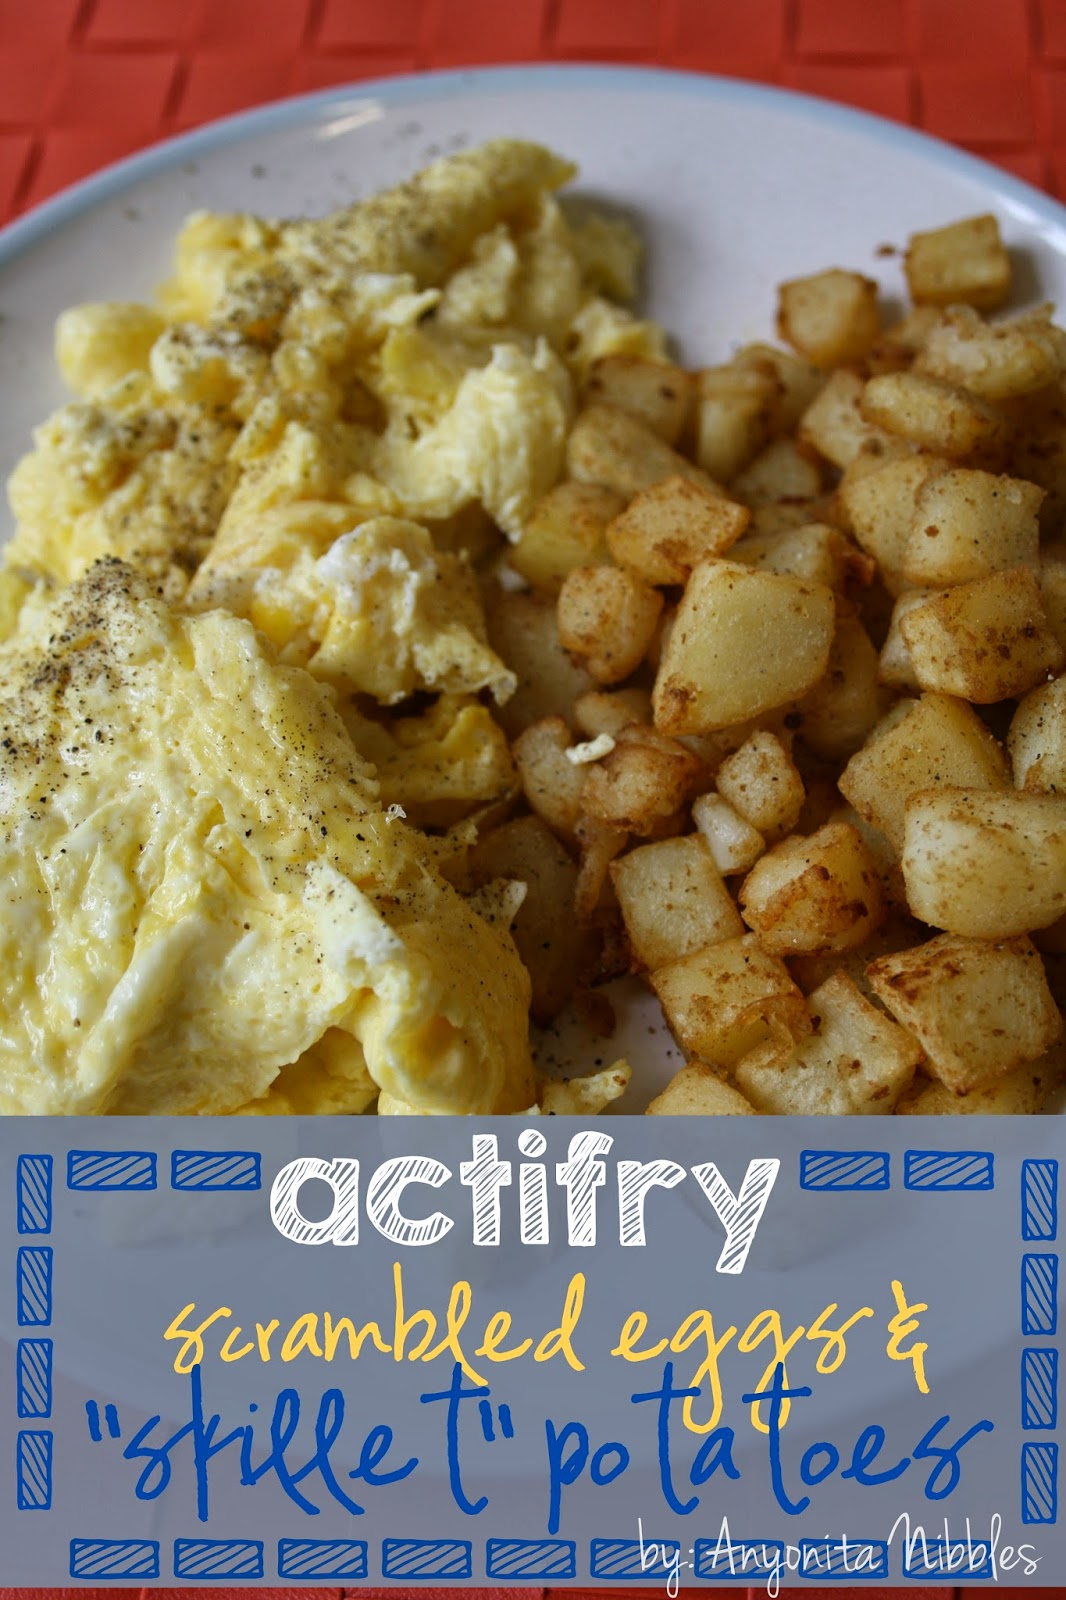 Actifry Scrambled Eggs And Skillet Breakfast Potatoes From Anyonita Nibbles